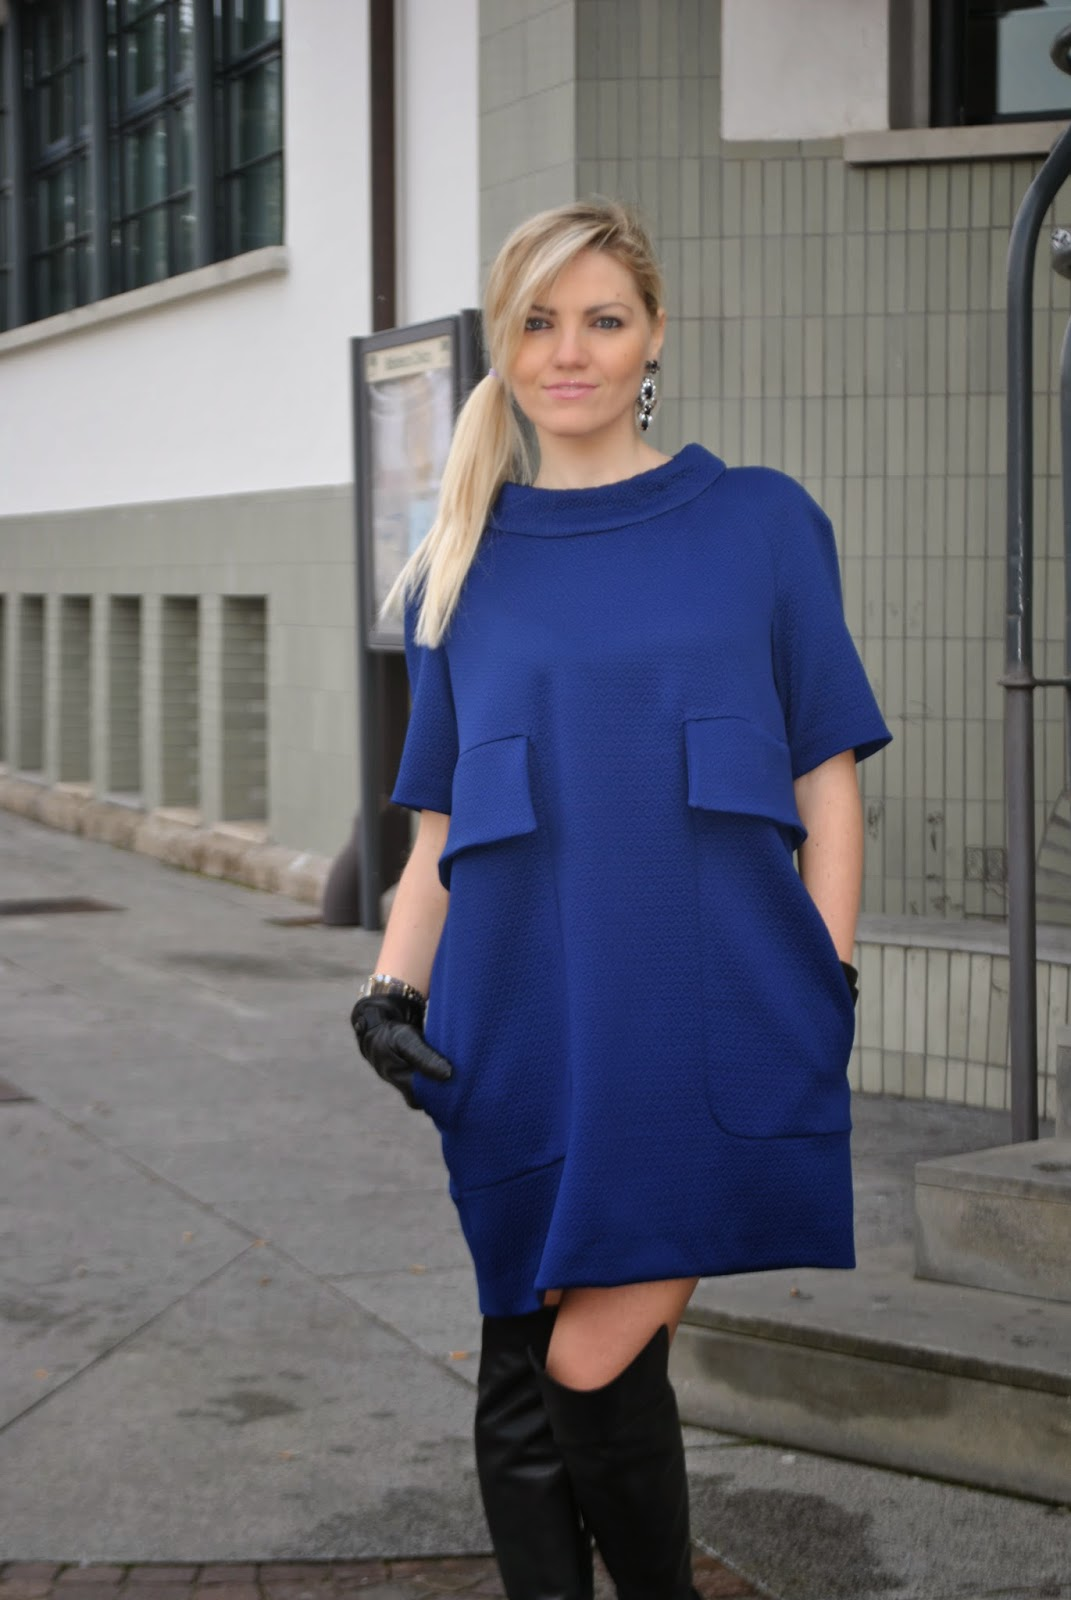 outfit cappotto a uovo outfit abito blu outfit blu come abbinare il blu outfit stivali al ginocchio outfit guanti abbinamenti cappotto a uovo abbinamenti abito blu linea anni sessanta mariafelicia magno fashion blog italiani fashion blogger italiane stivali al ginocchio danilo di lea bracciale majique  street style look book how to wear blue egg shape coat outfit blue dress '60 outfit outfit invernali outfit febbraio 2015 outfit invernali eleganti winter outfits colorblock by felymfashion bloggers italy italian bloggers girls blonde girls blue occhi blu ragazze bionde acconciatura coda laterale